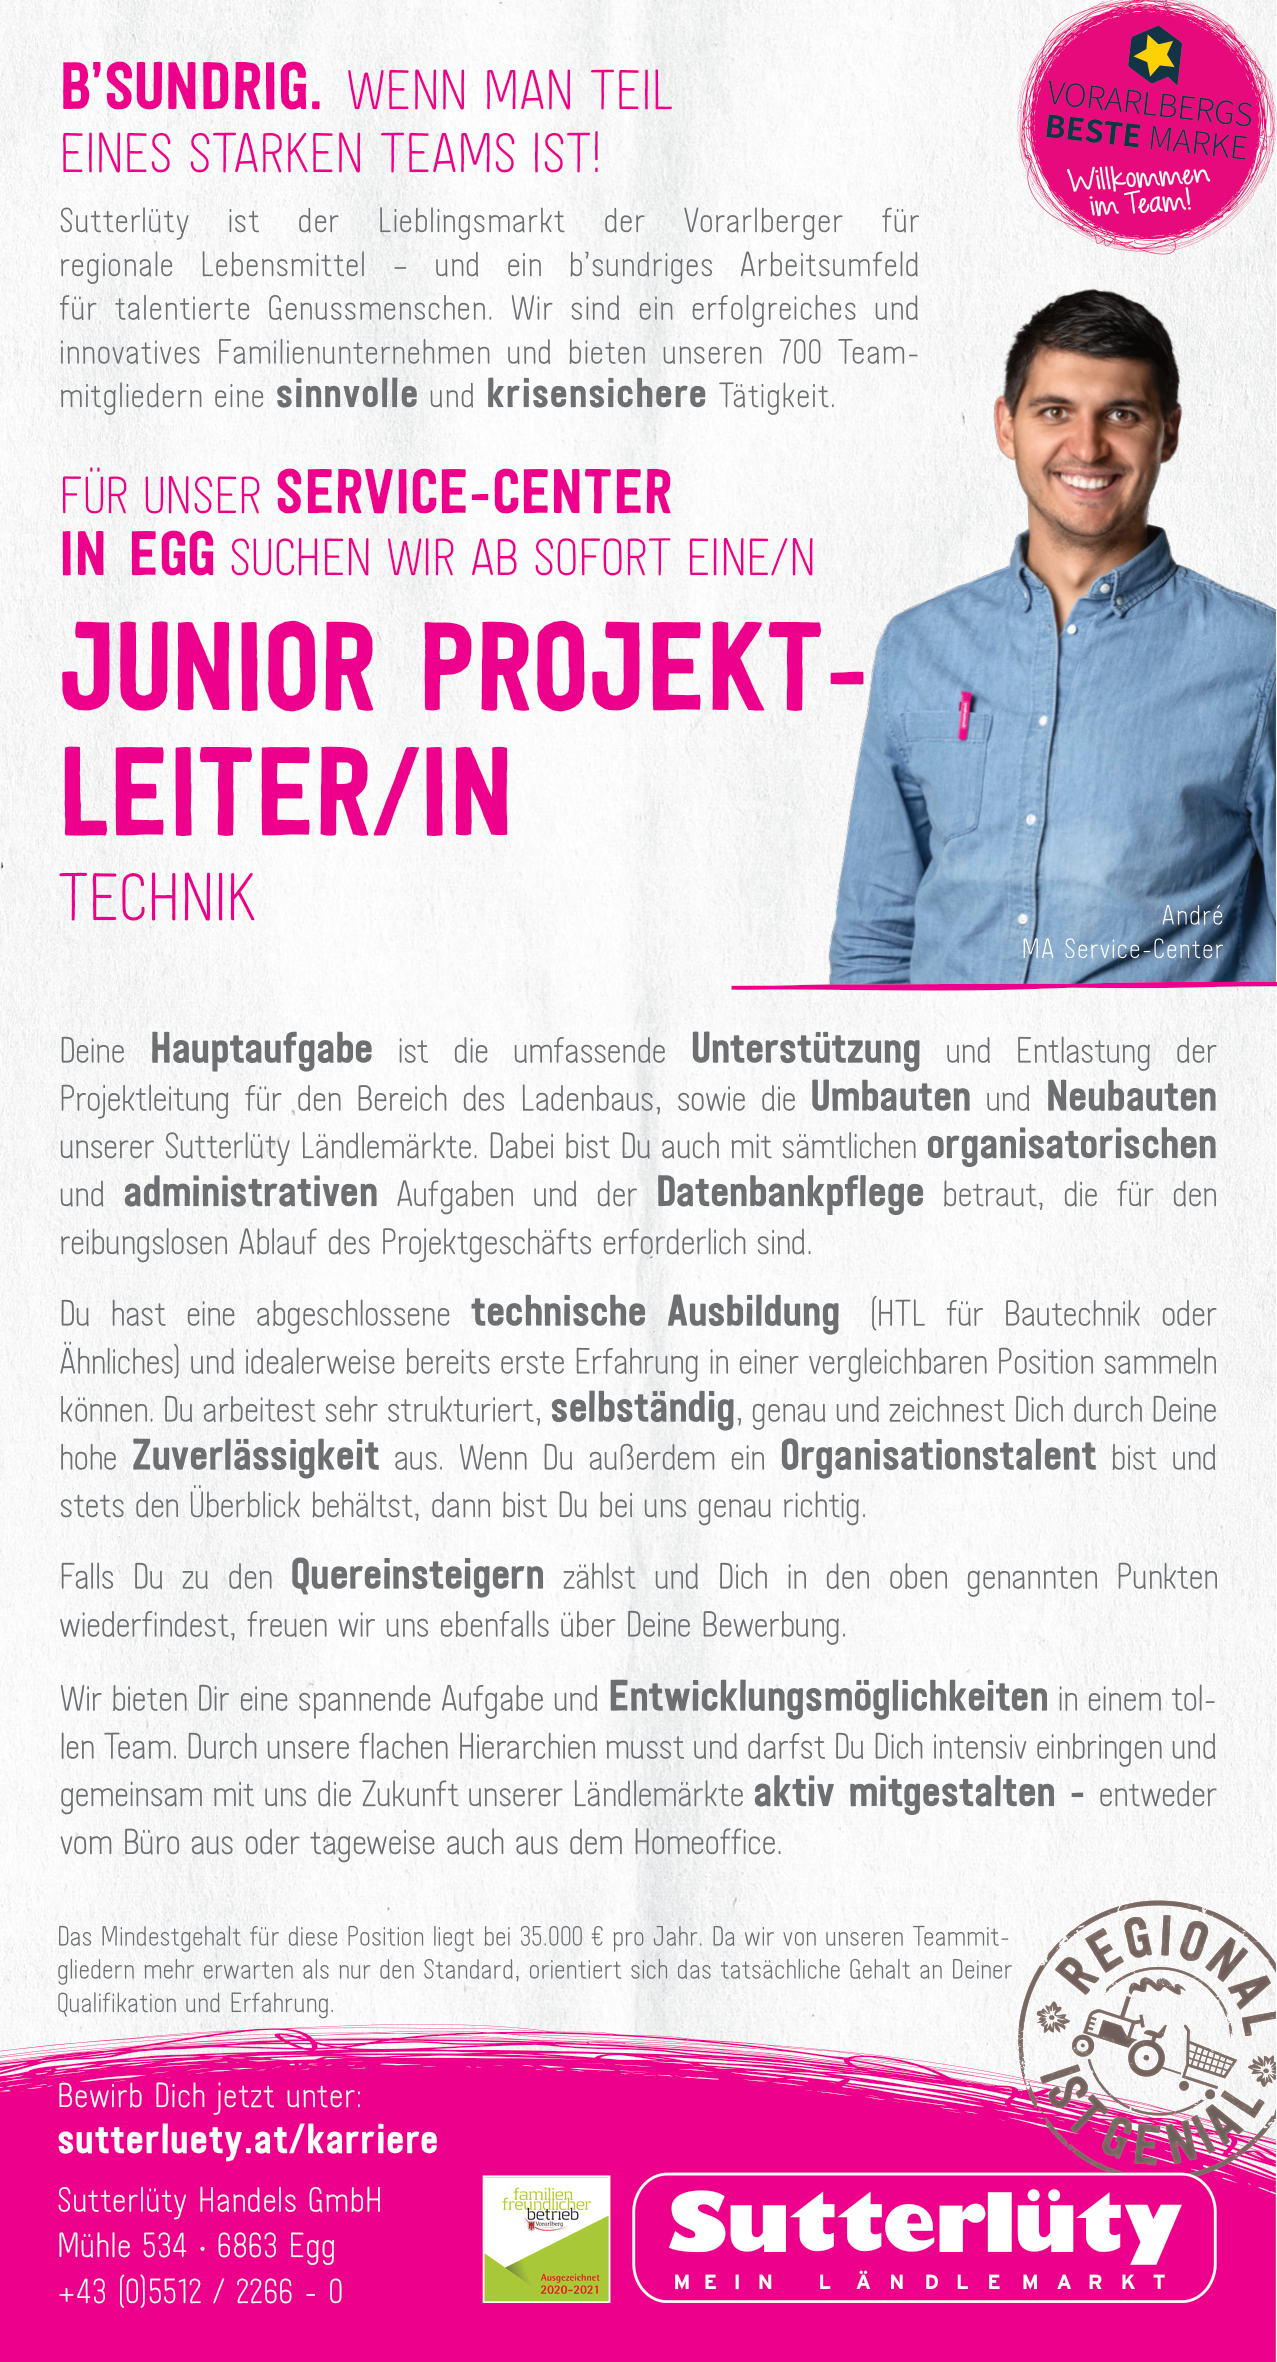 Junior Projektleiter/in Technik